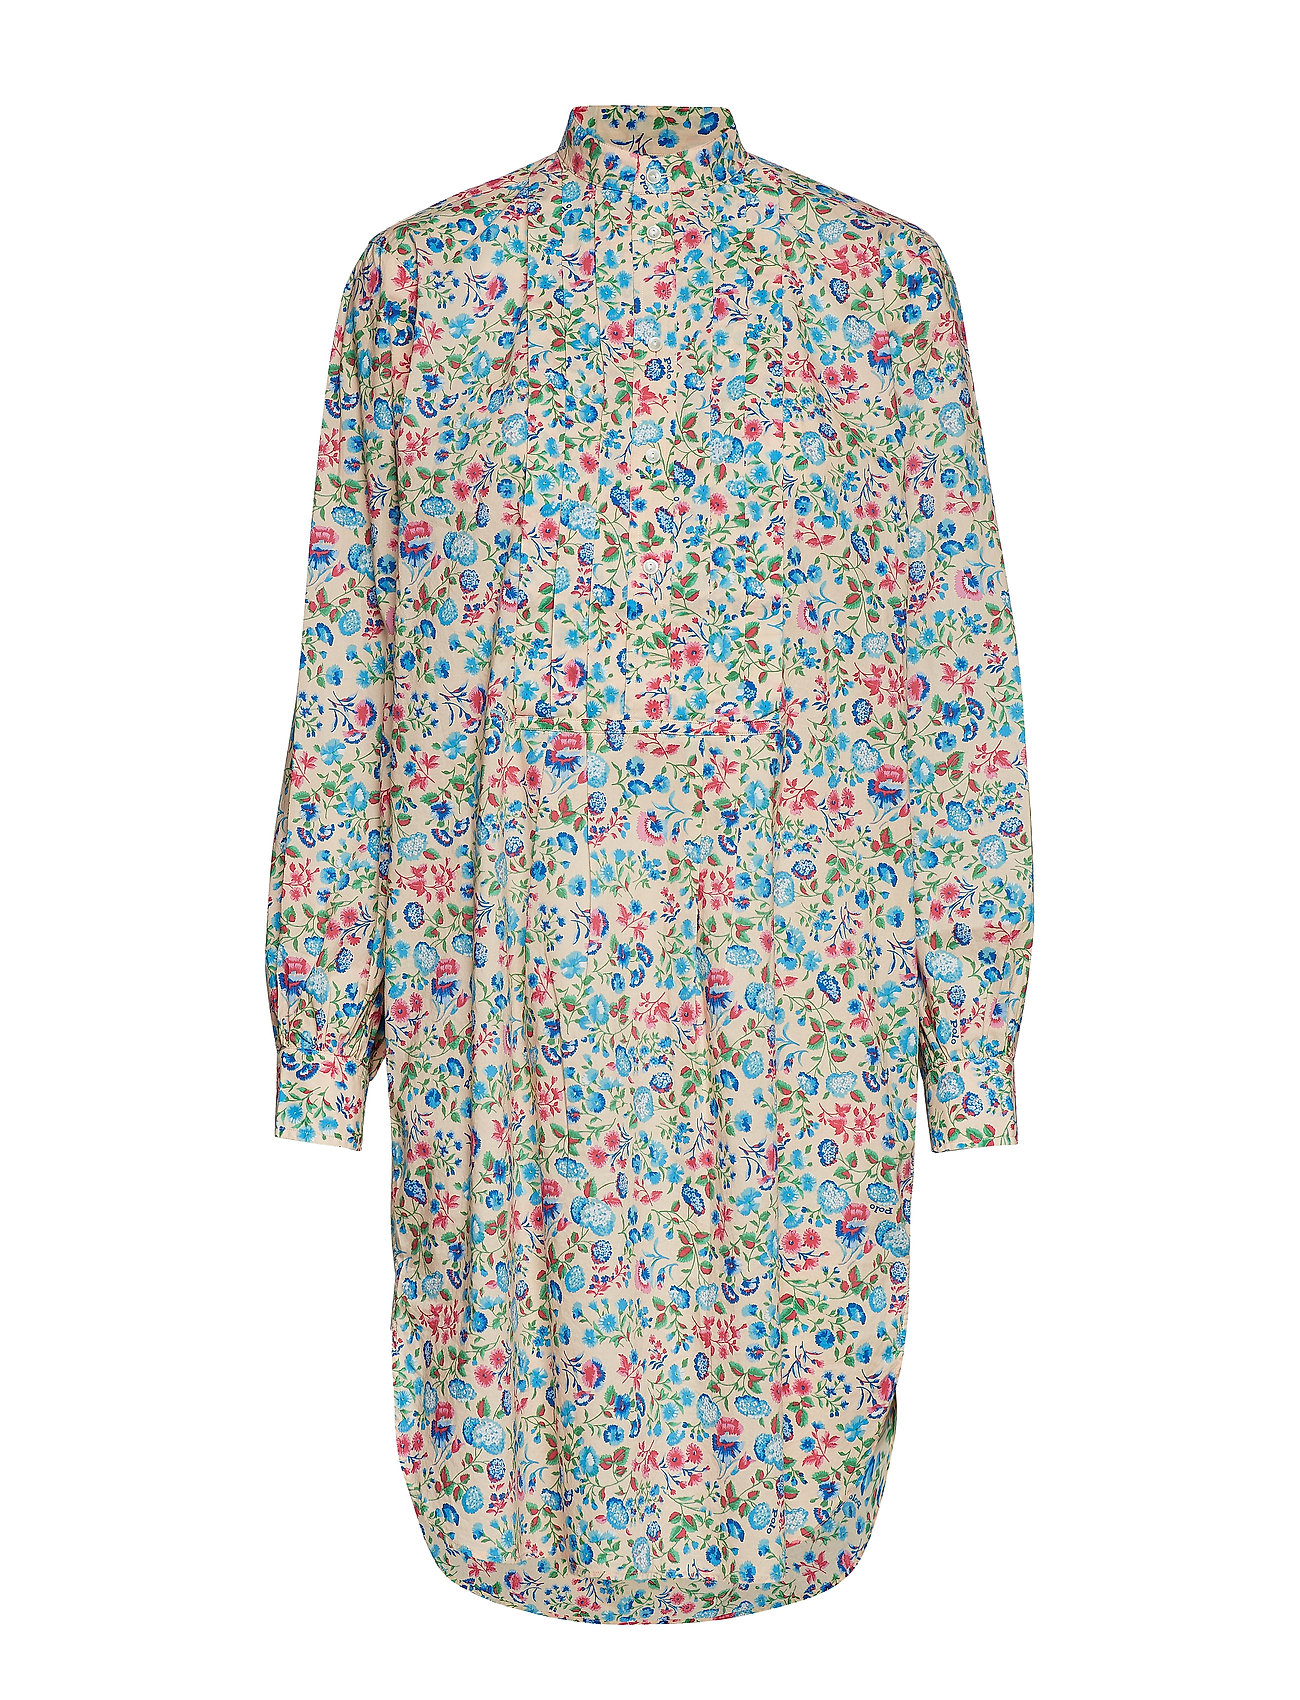 Polo Ralph Lauren Floral Cotton Shirtdress